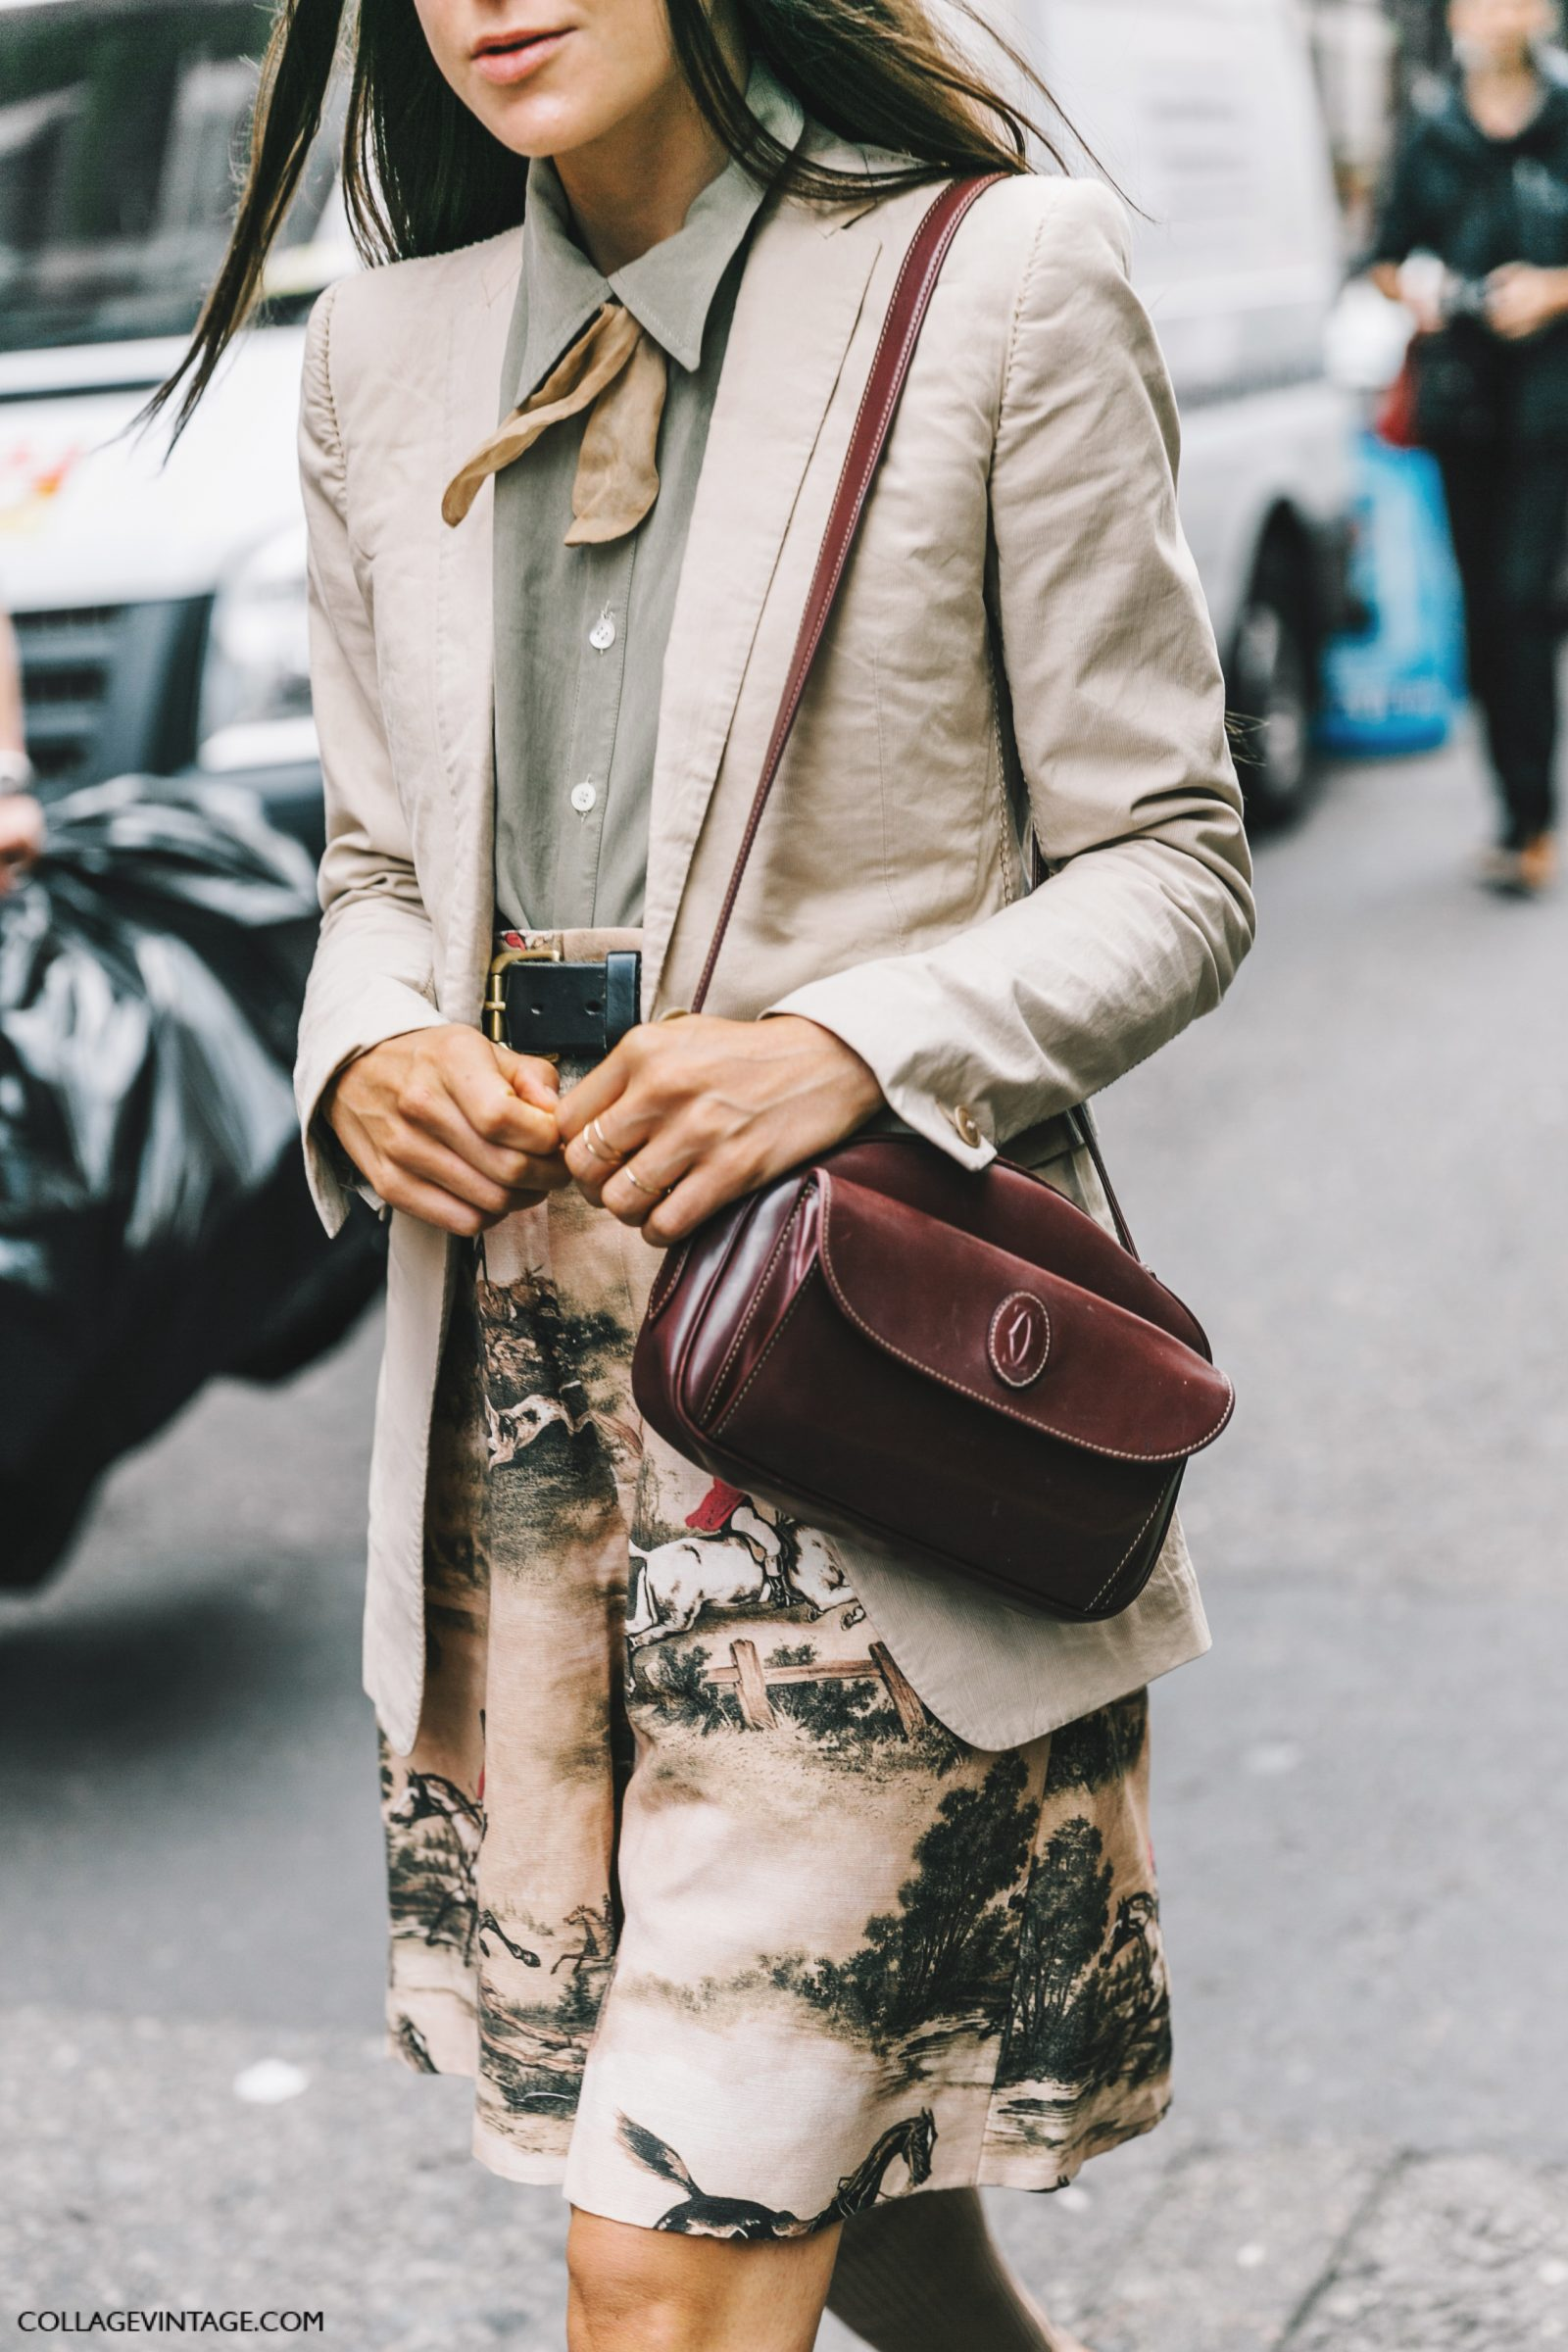 lfw-london_fashion_week_ss17-street_style-outfits-collage_vintage-vintage-topshop_unique-anya-mulberry-preen-130